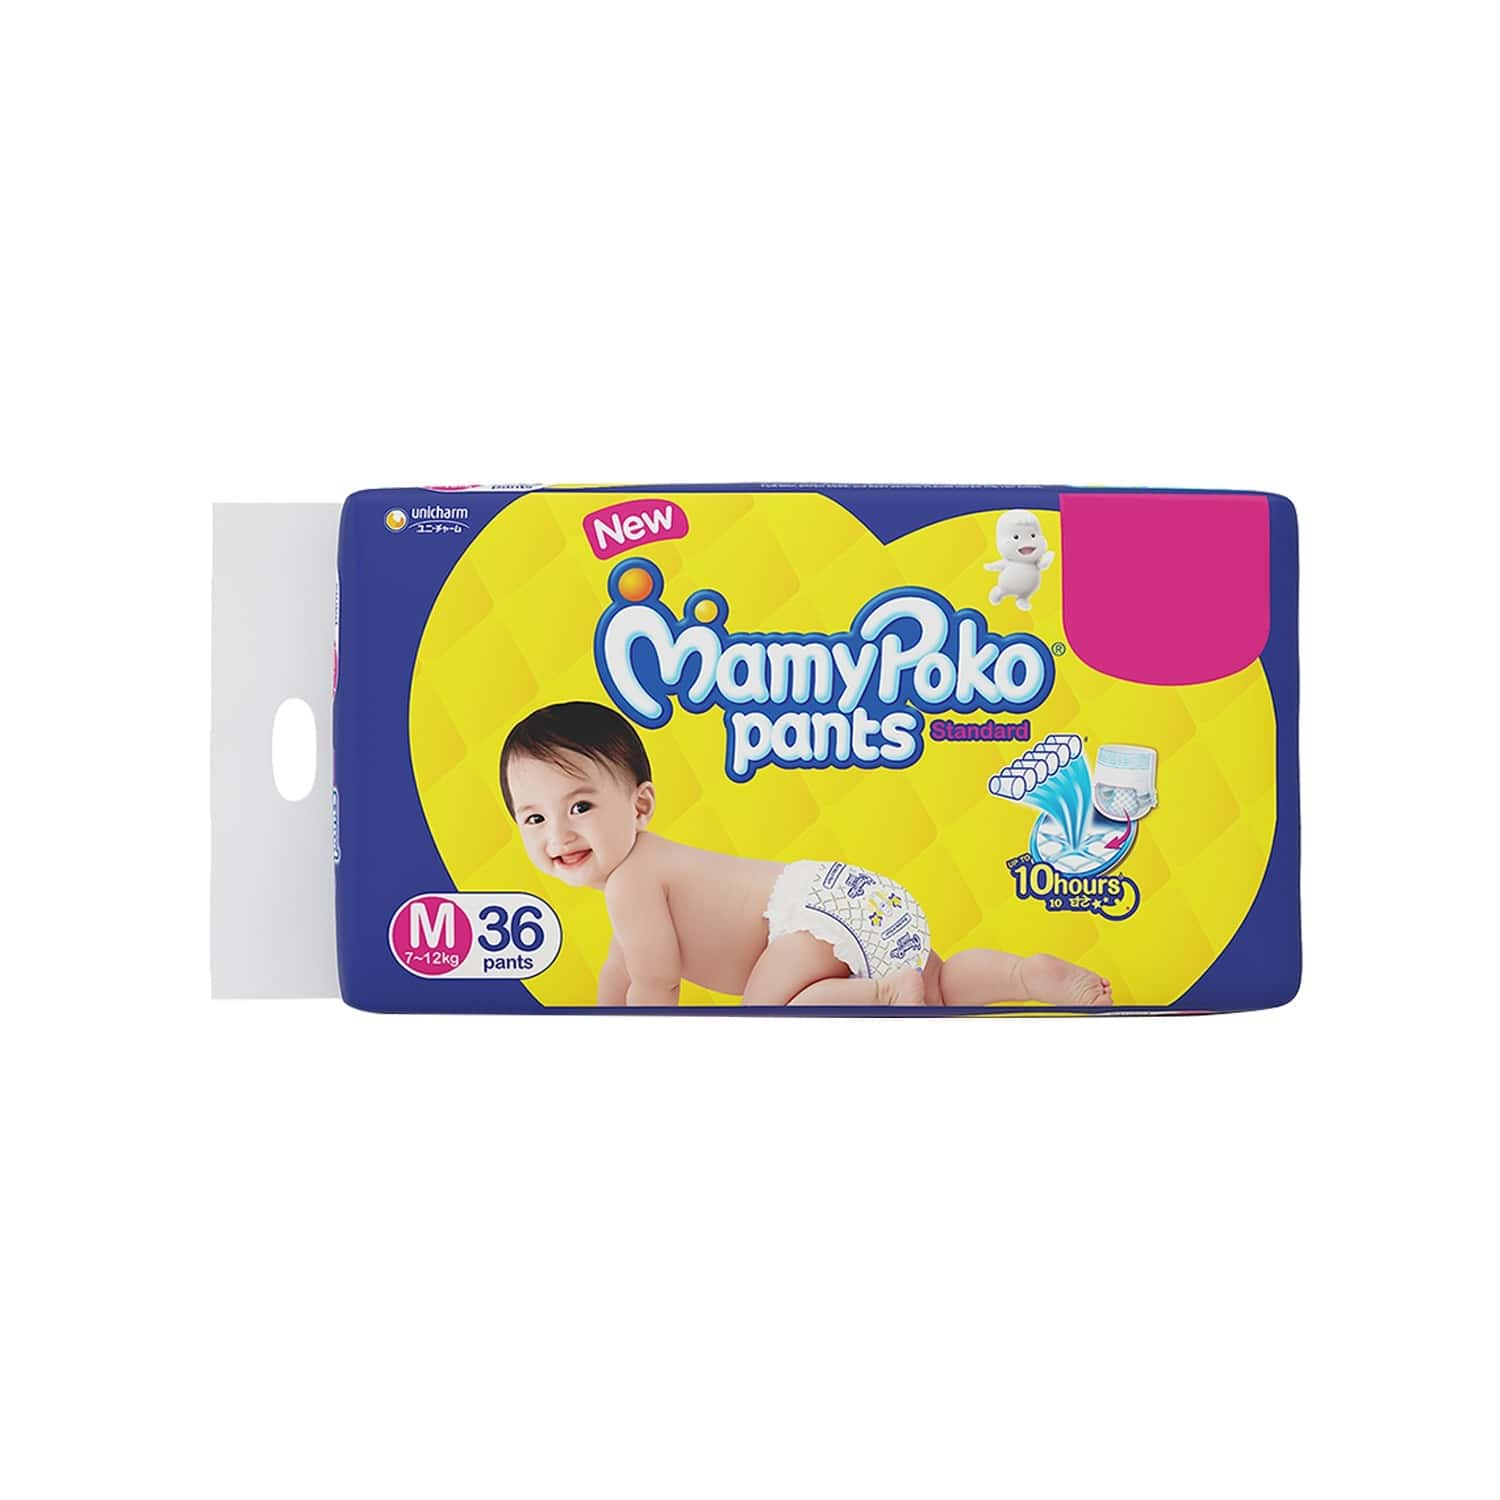 Mamy Poko Pants Standard Pant Style Medium Size Diapers - 36 Count